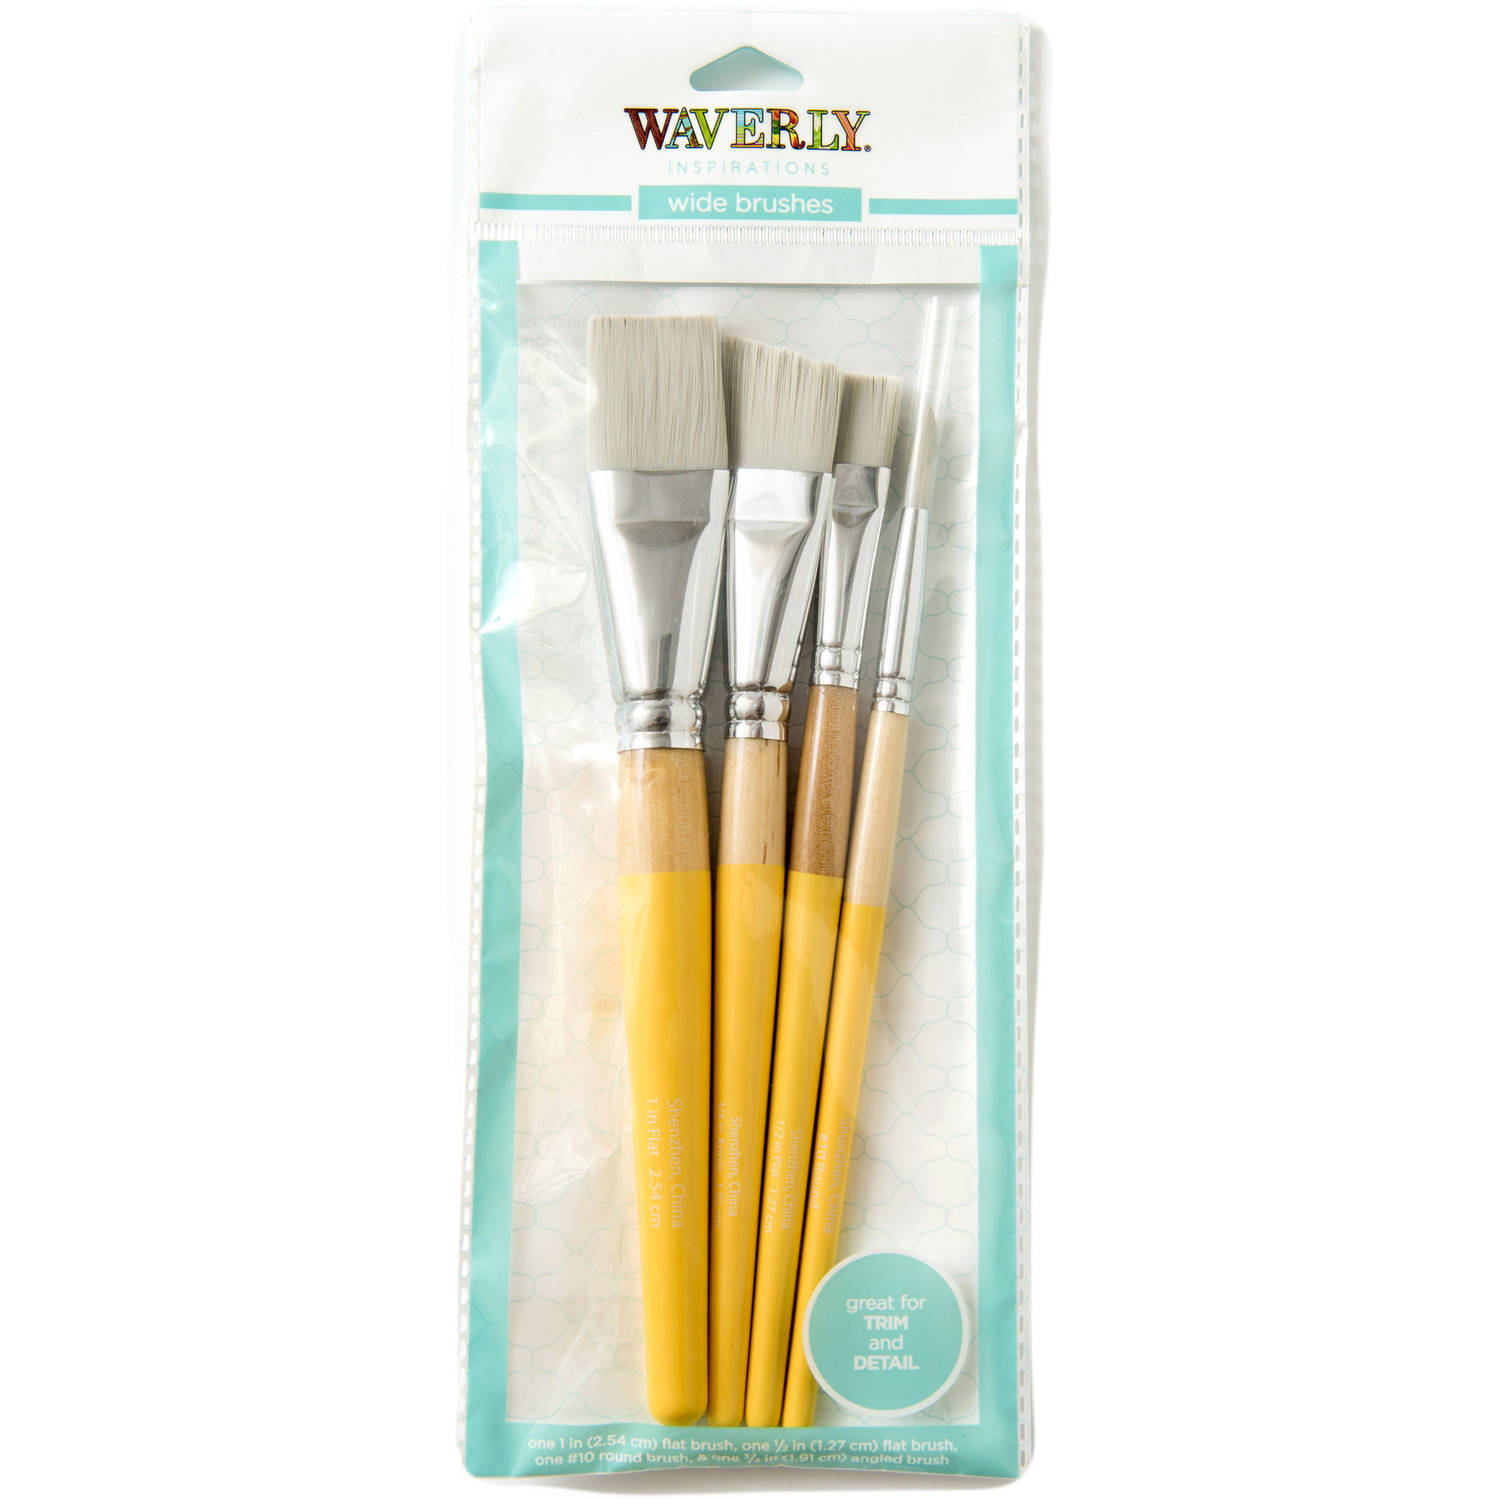 Waverly Inspirations 4-Piece Wide Brush Set for Acrylic Paint